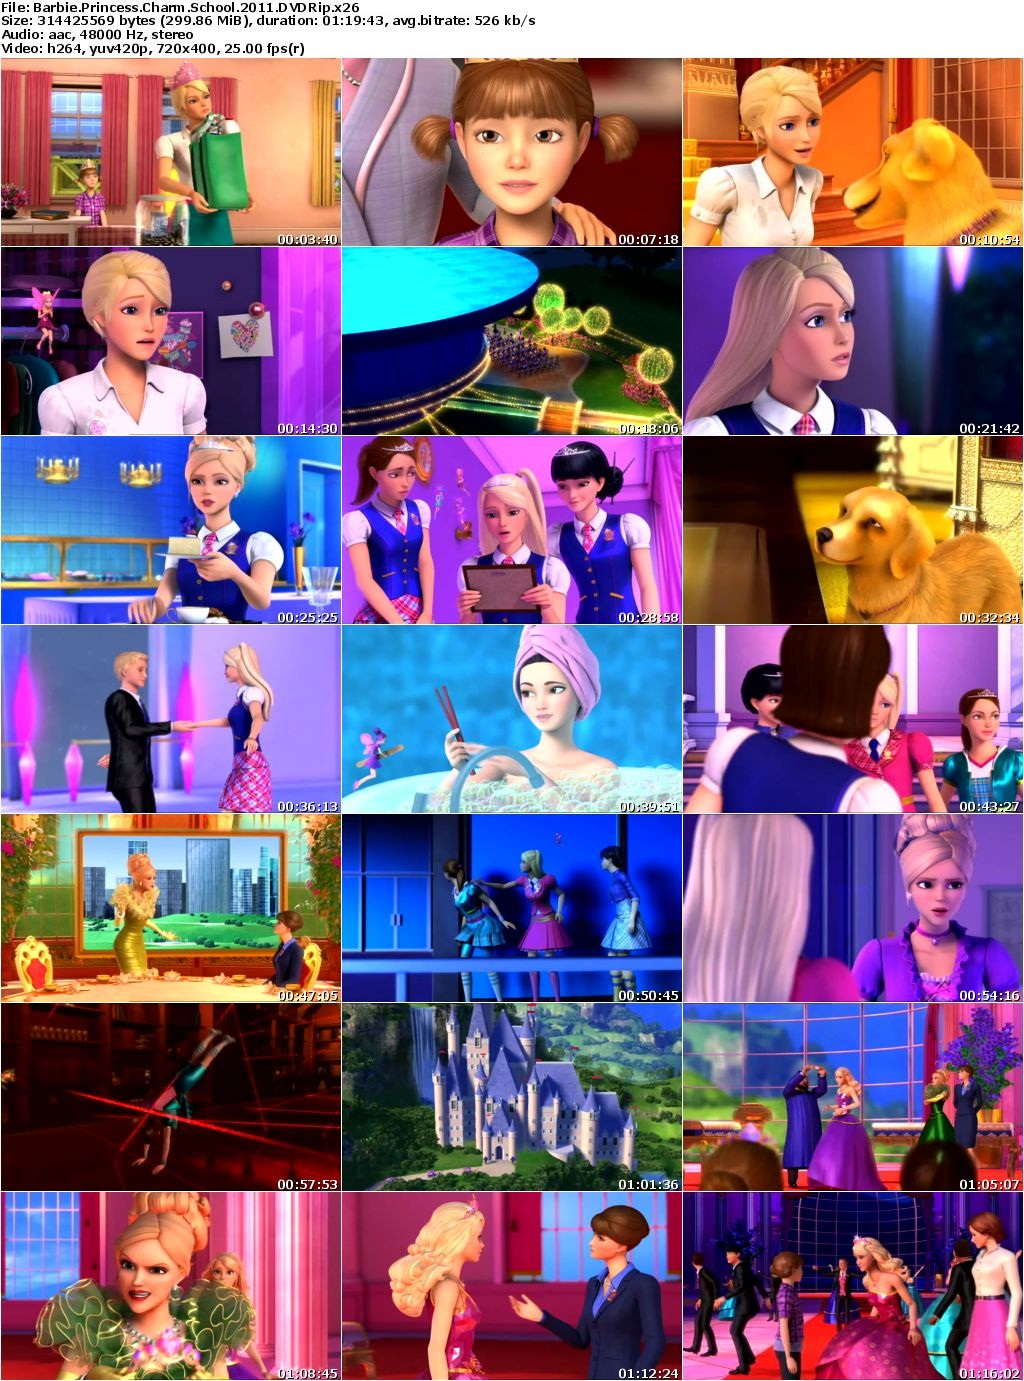 Barbie+Princess+Charm+School+%25282011%2529++DVDRip